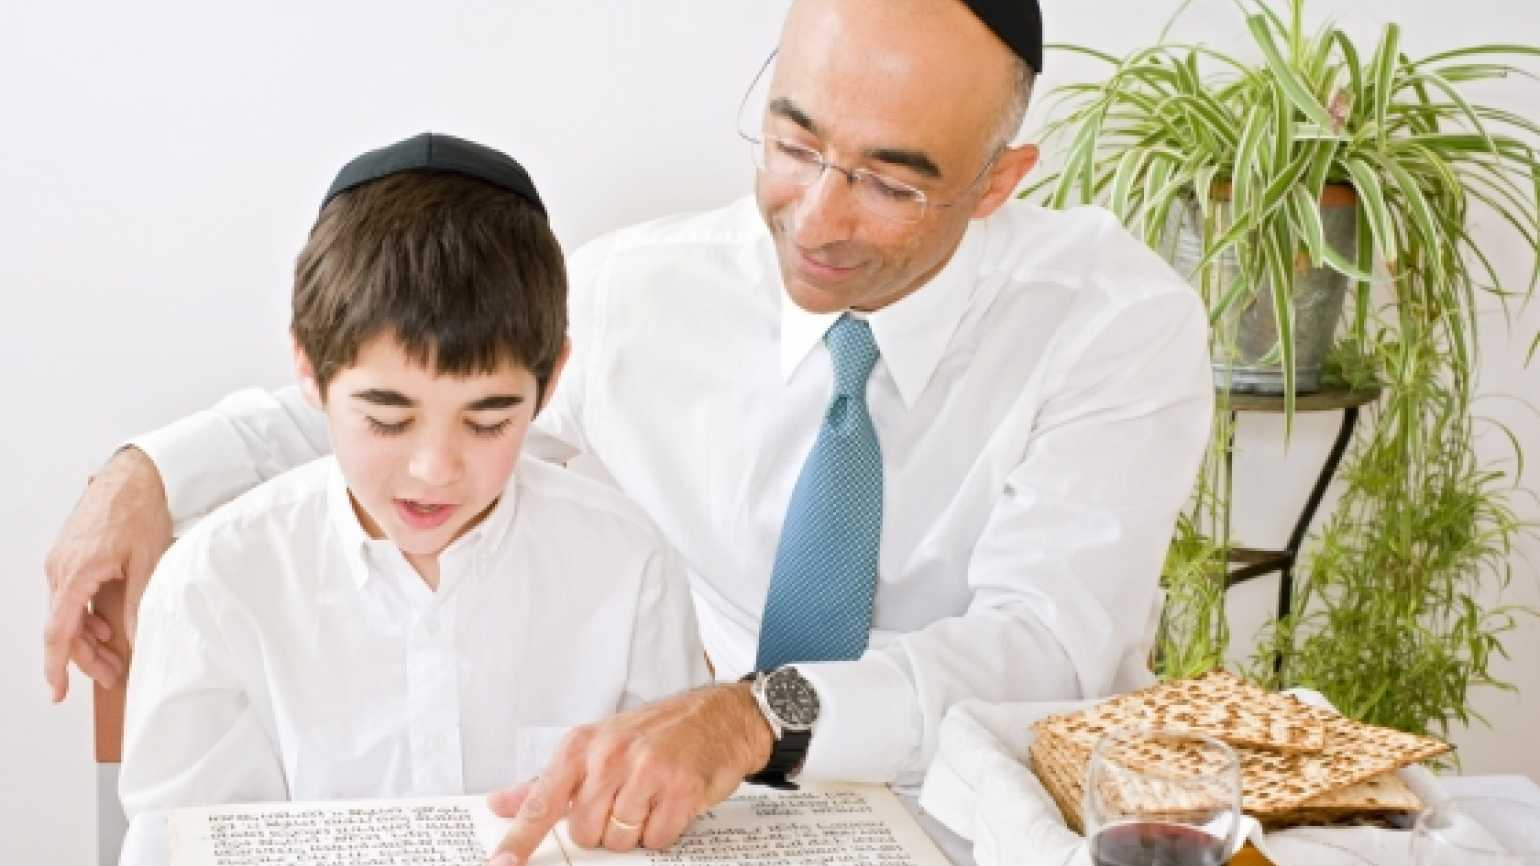 father and son celebrating Passover reading